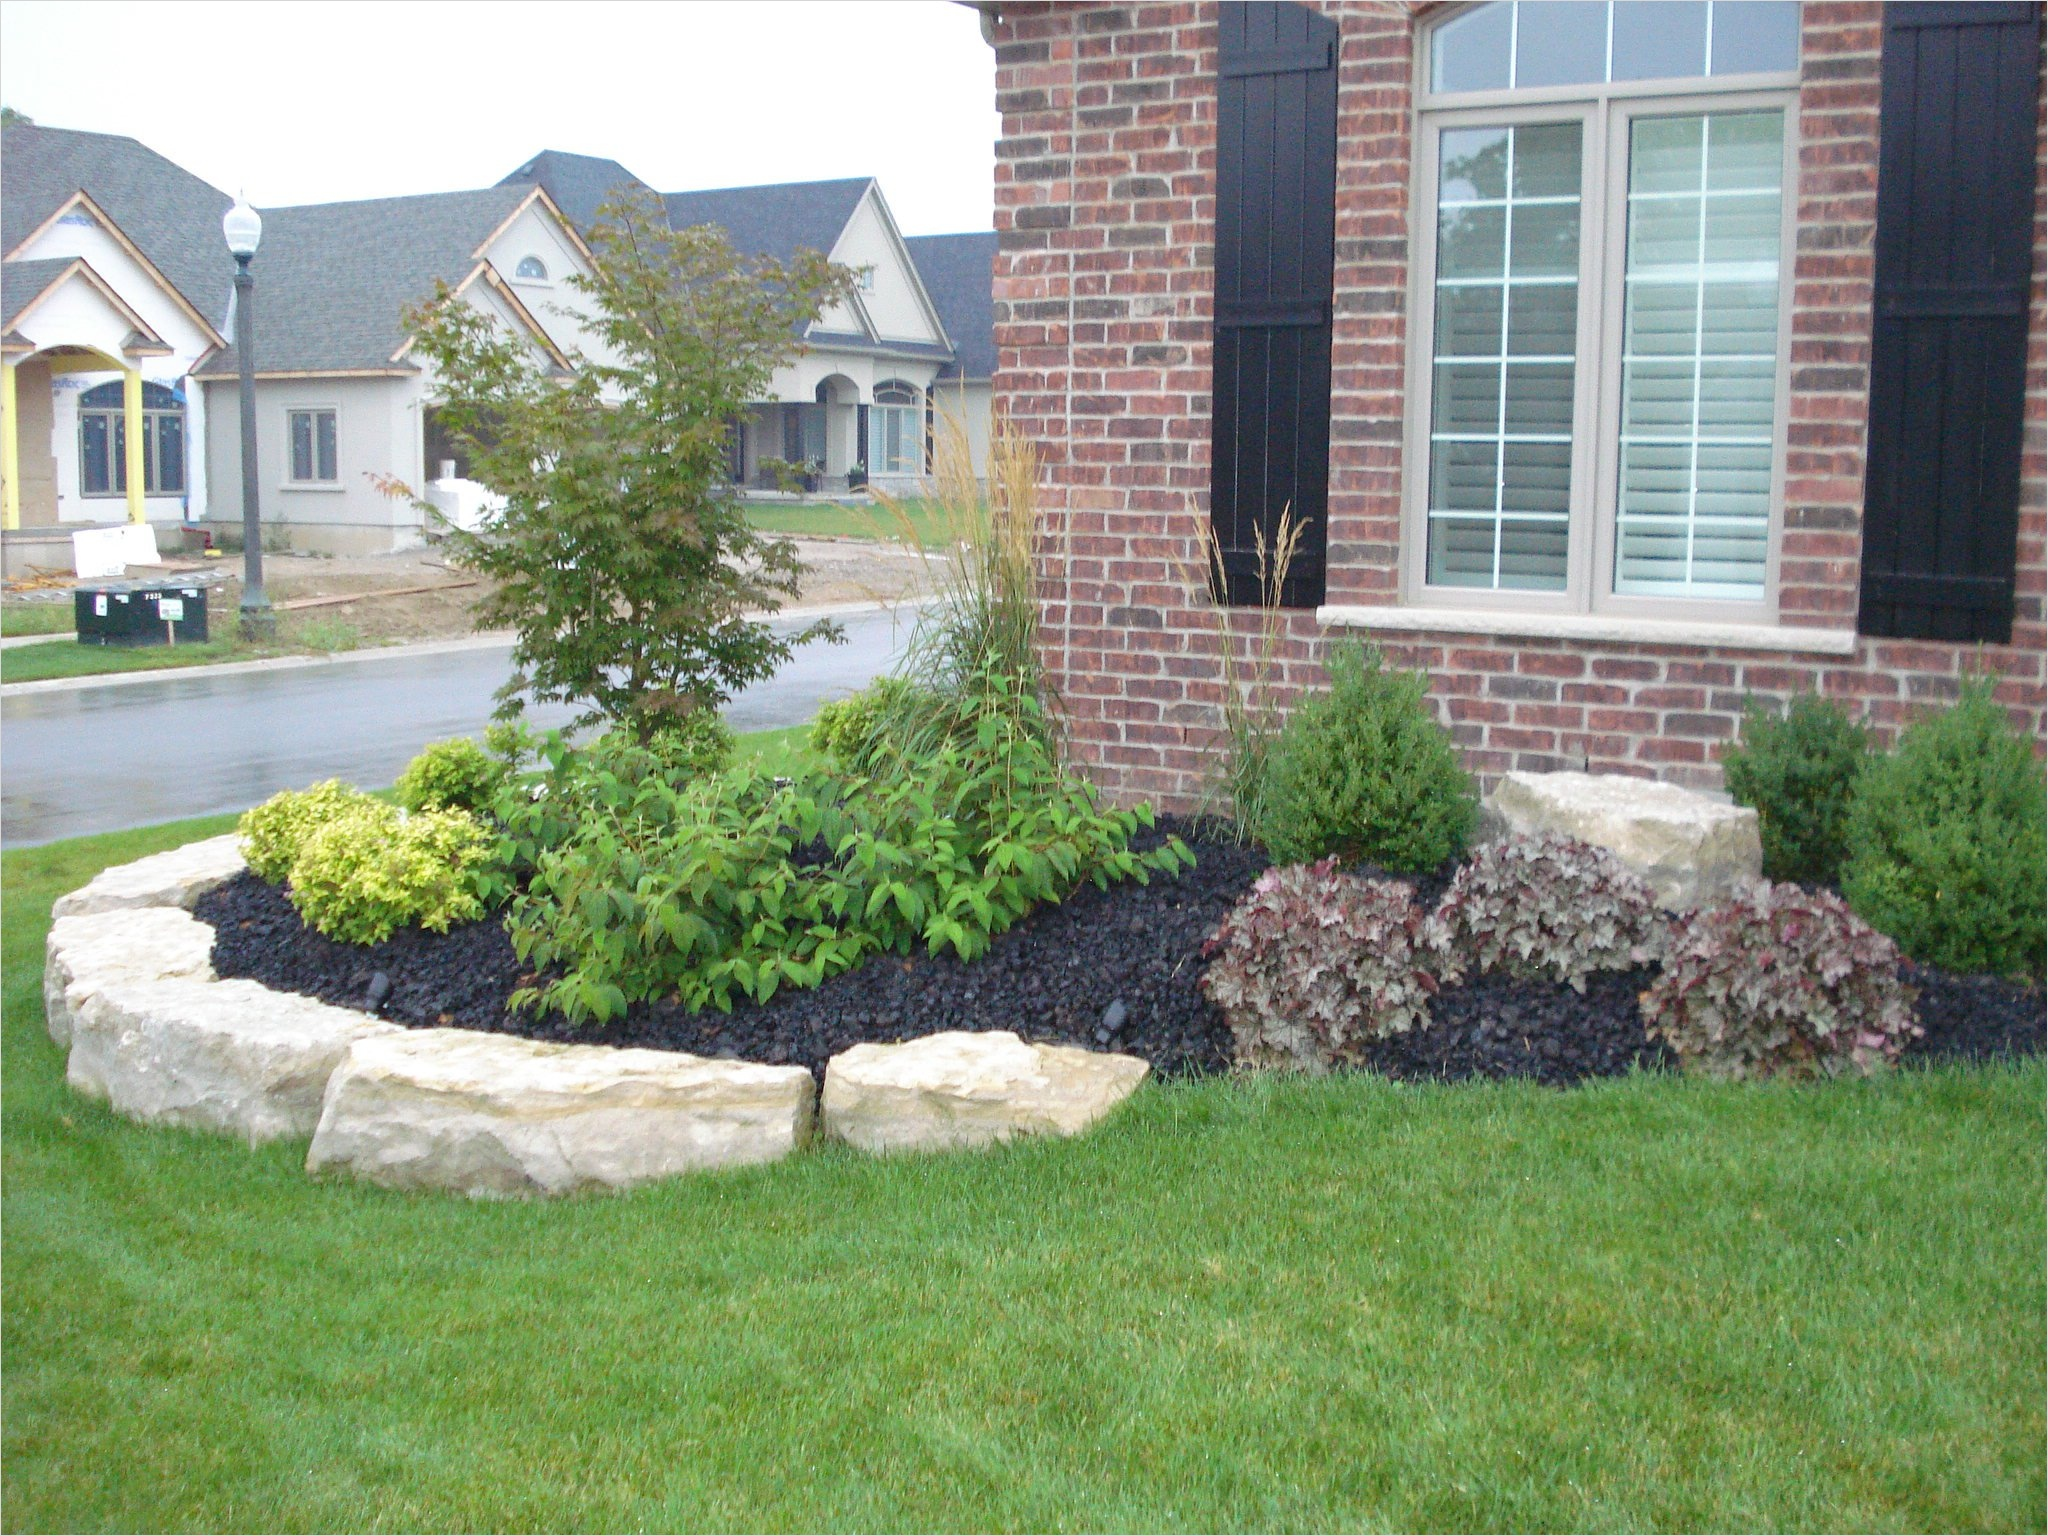 43 Perfect Gravel Landscaping Ideas 94 Ideas White Rock and Gravel Plus Green Grass for Front Yard Landscape Ideas 8